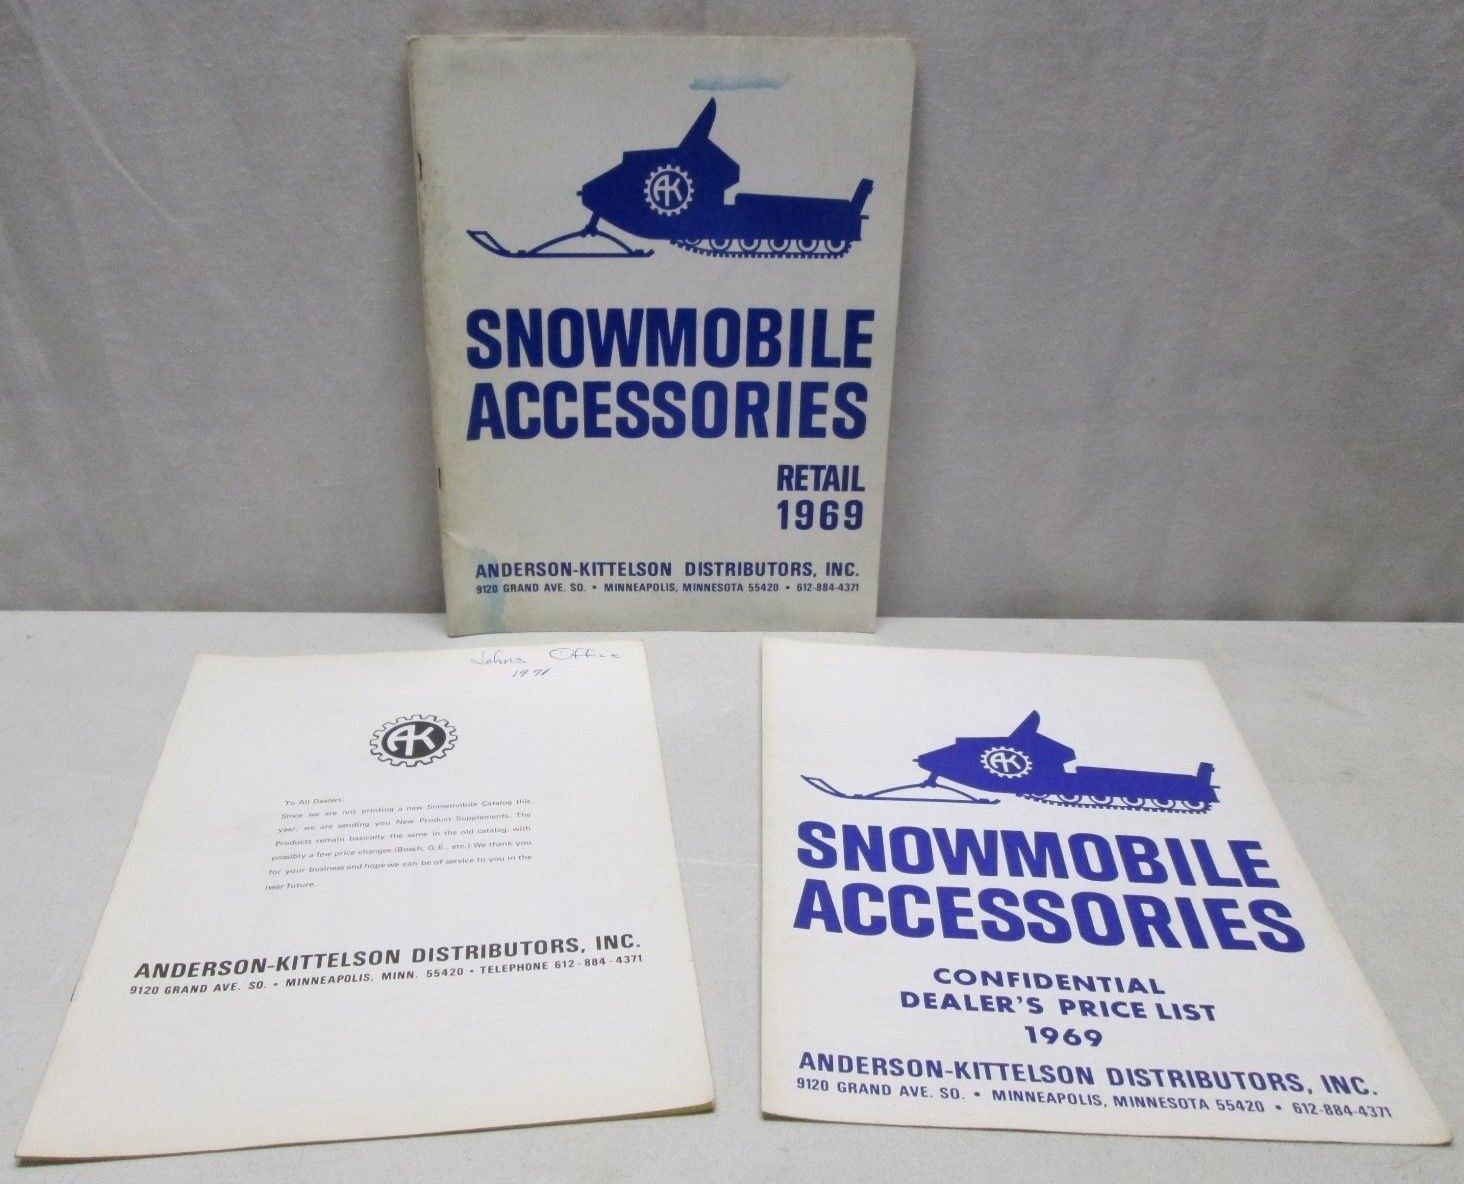 Vintage Anderson Kittelson Snowmobile Accessories Catalog 1969 Price  List etc...  high-quality merchandise and convenient, honest service